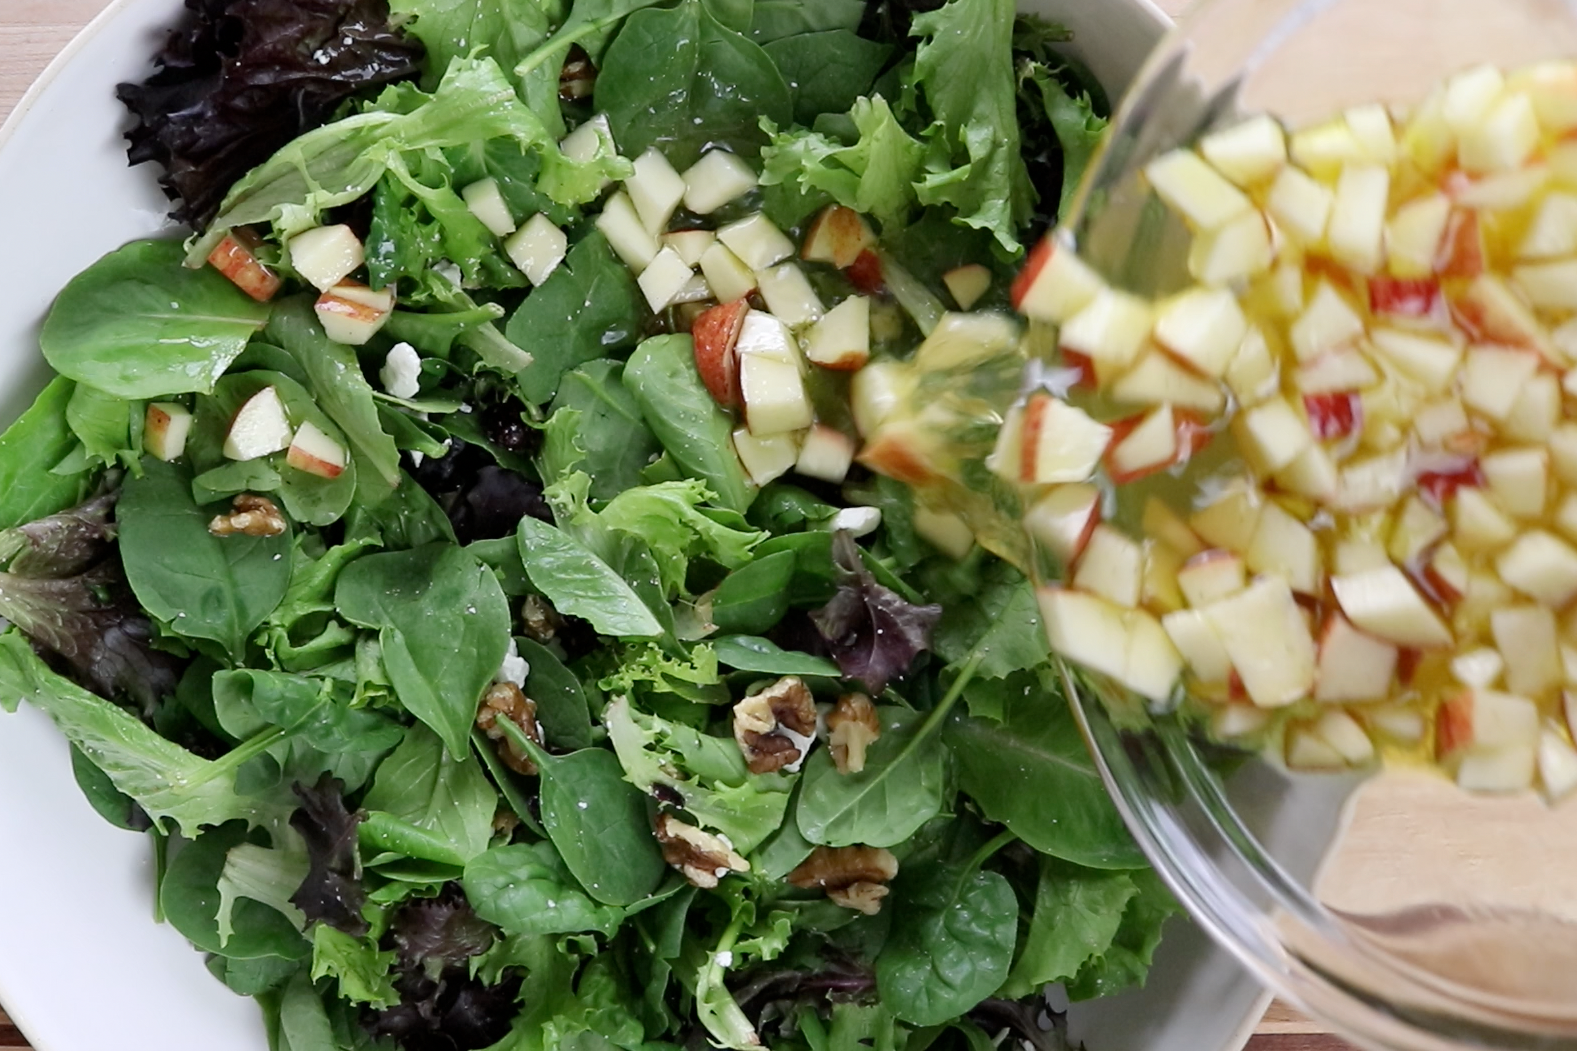 5. Pour apple dressing over salad and toss together. -